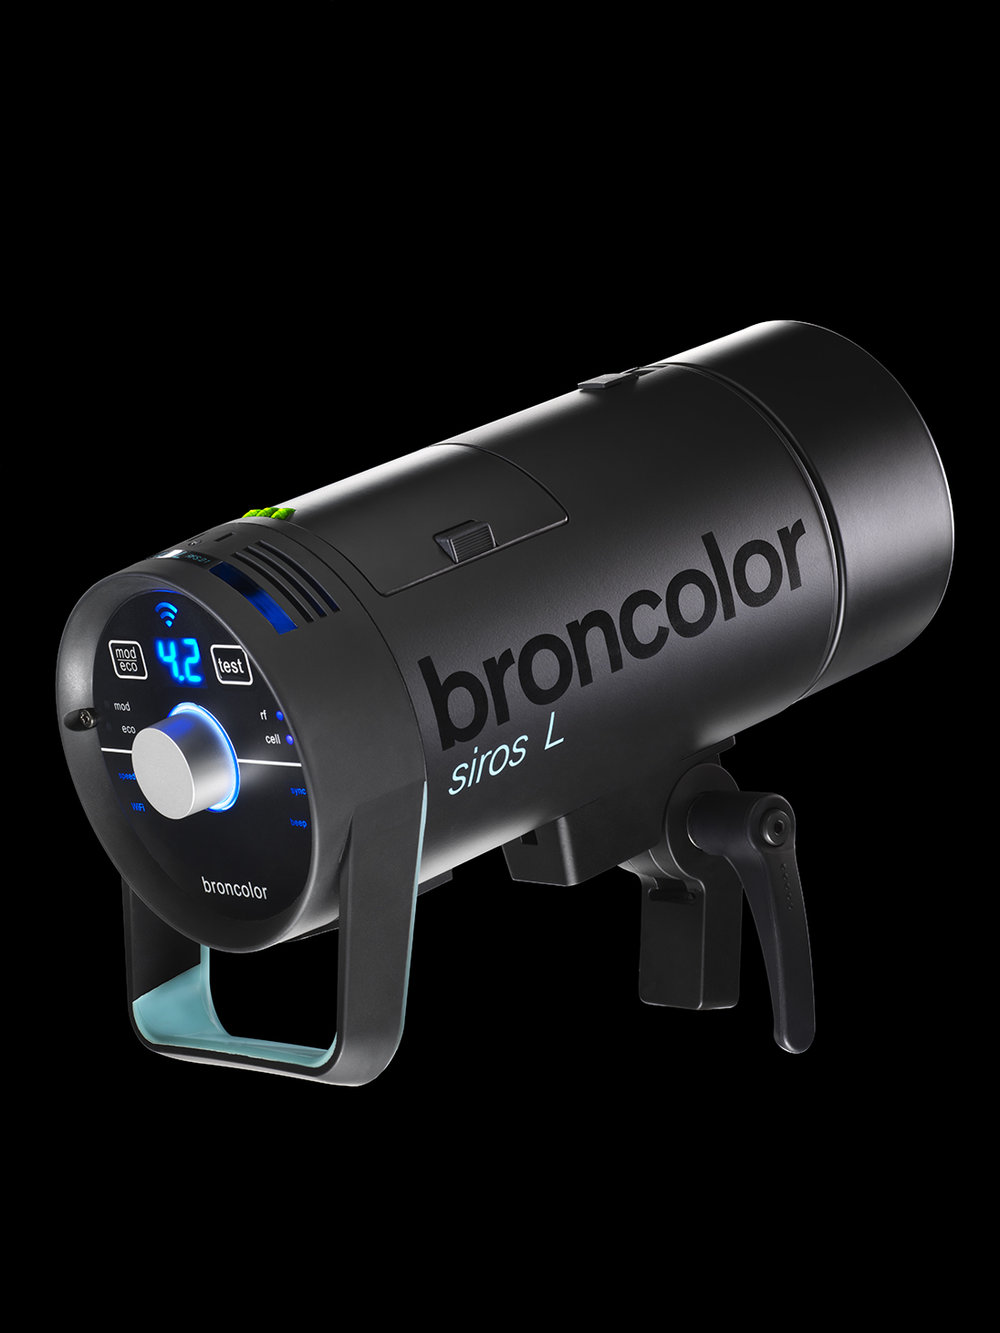 Broncolor Siros L 800 Ws. Photo courtesy of Broncolor